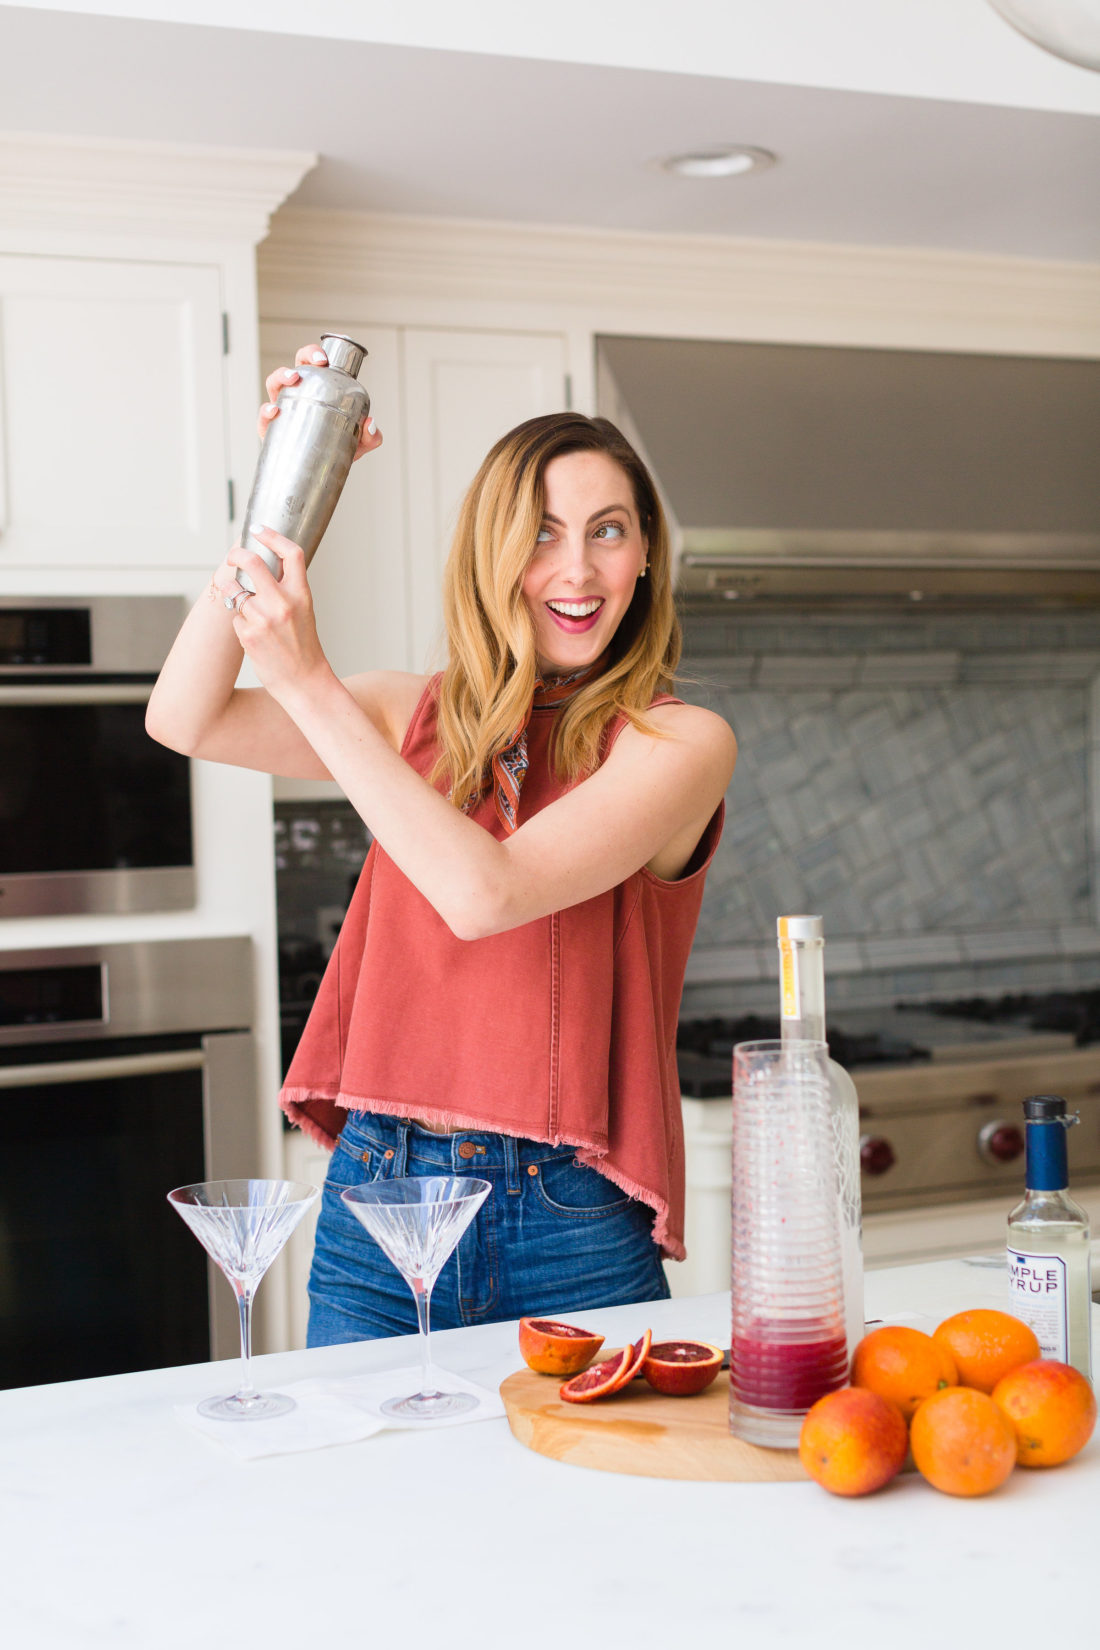 Eva Amurri Martino shakes up her blood orange and ginger martinis in a stainless steel cocktail shaker in the kitchen of her Connecticut home